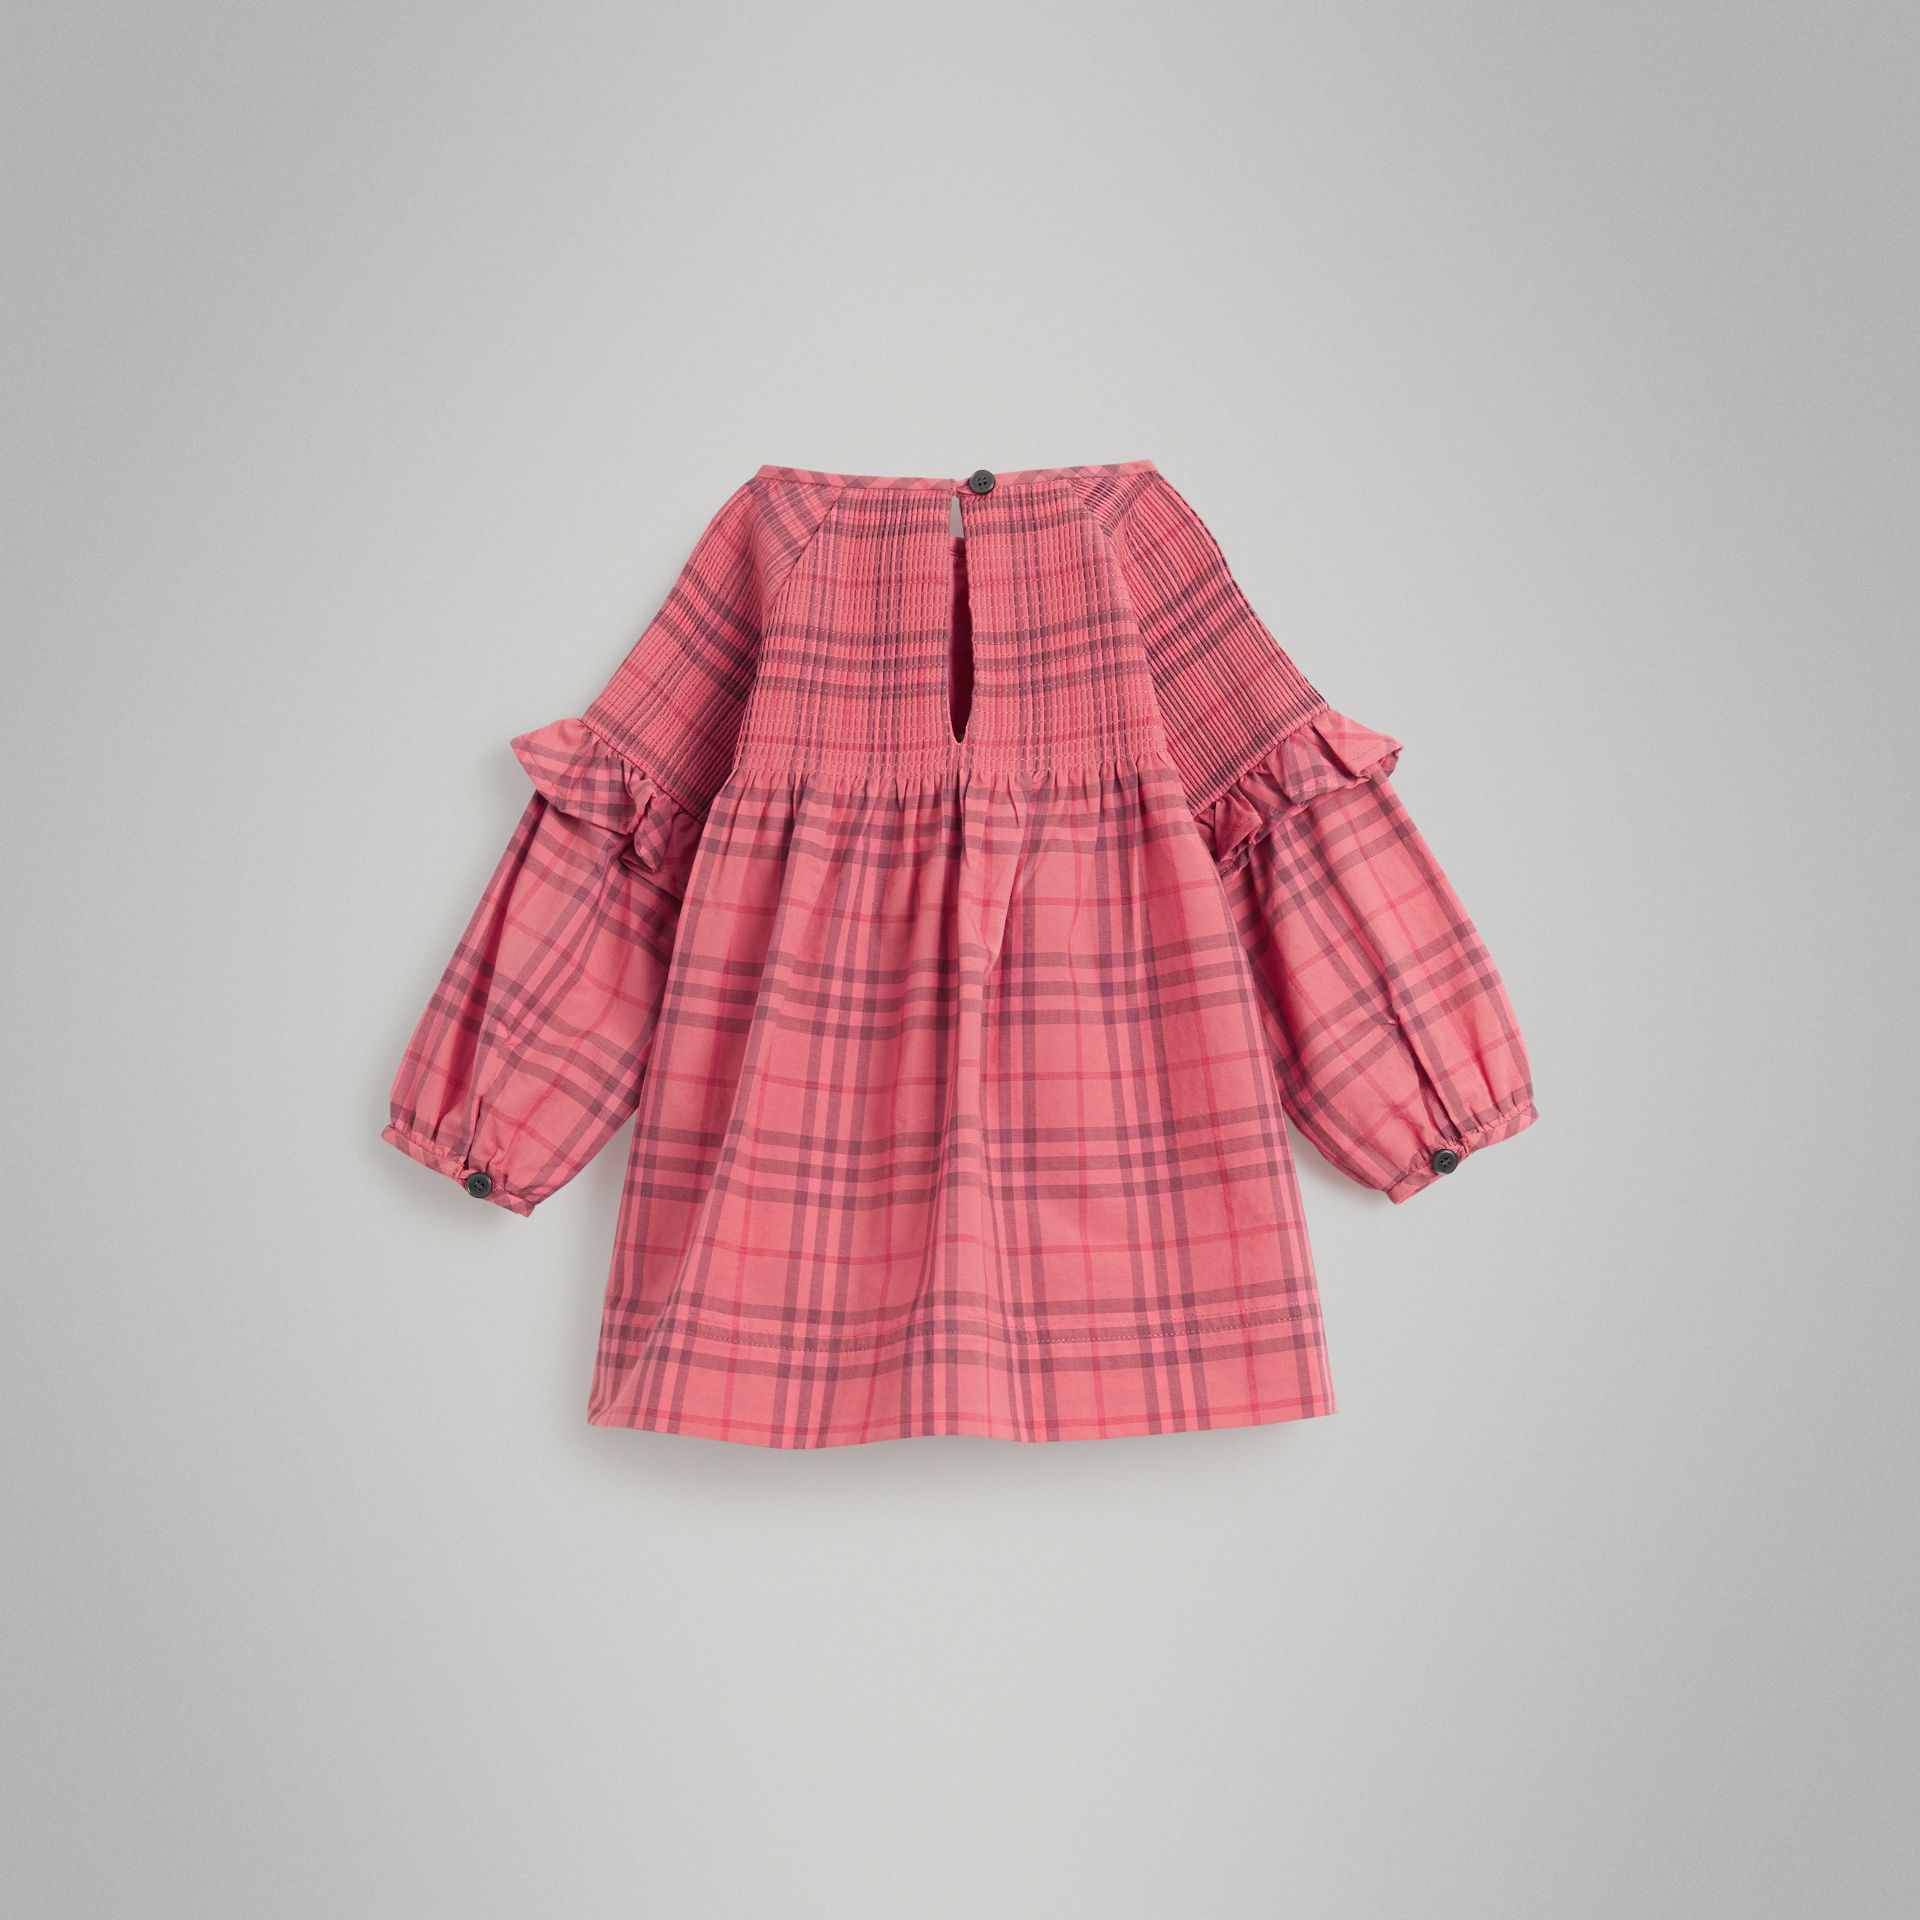 Ruffle Detail Check Cotton Dress in Coral Red - Children | Burberry Hong Kong - gallery image 3